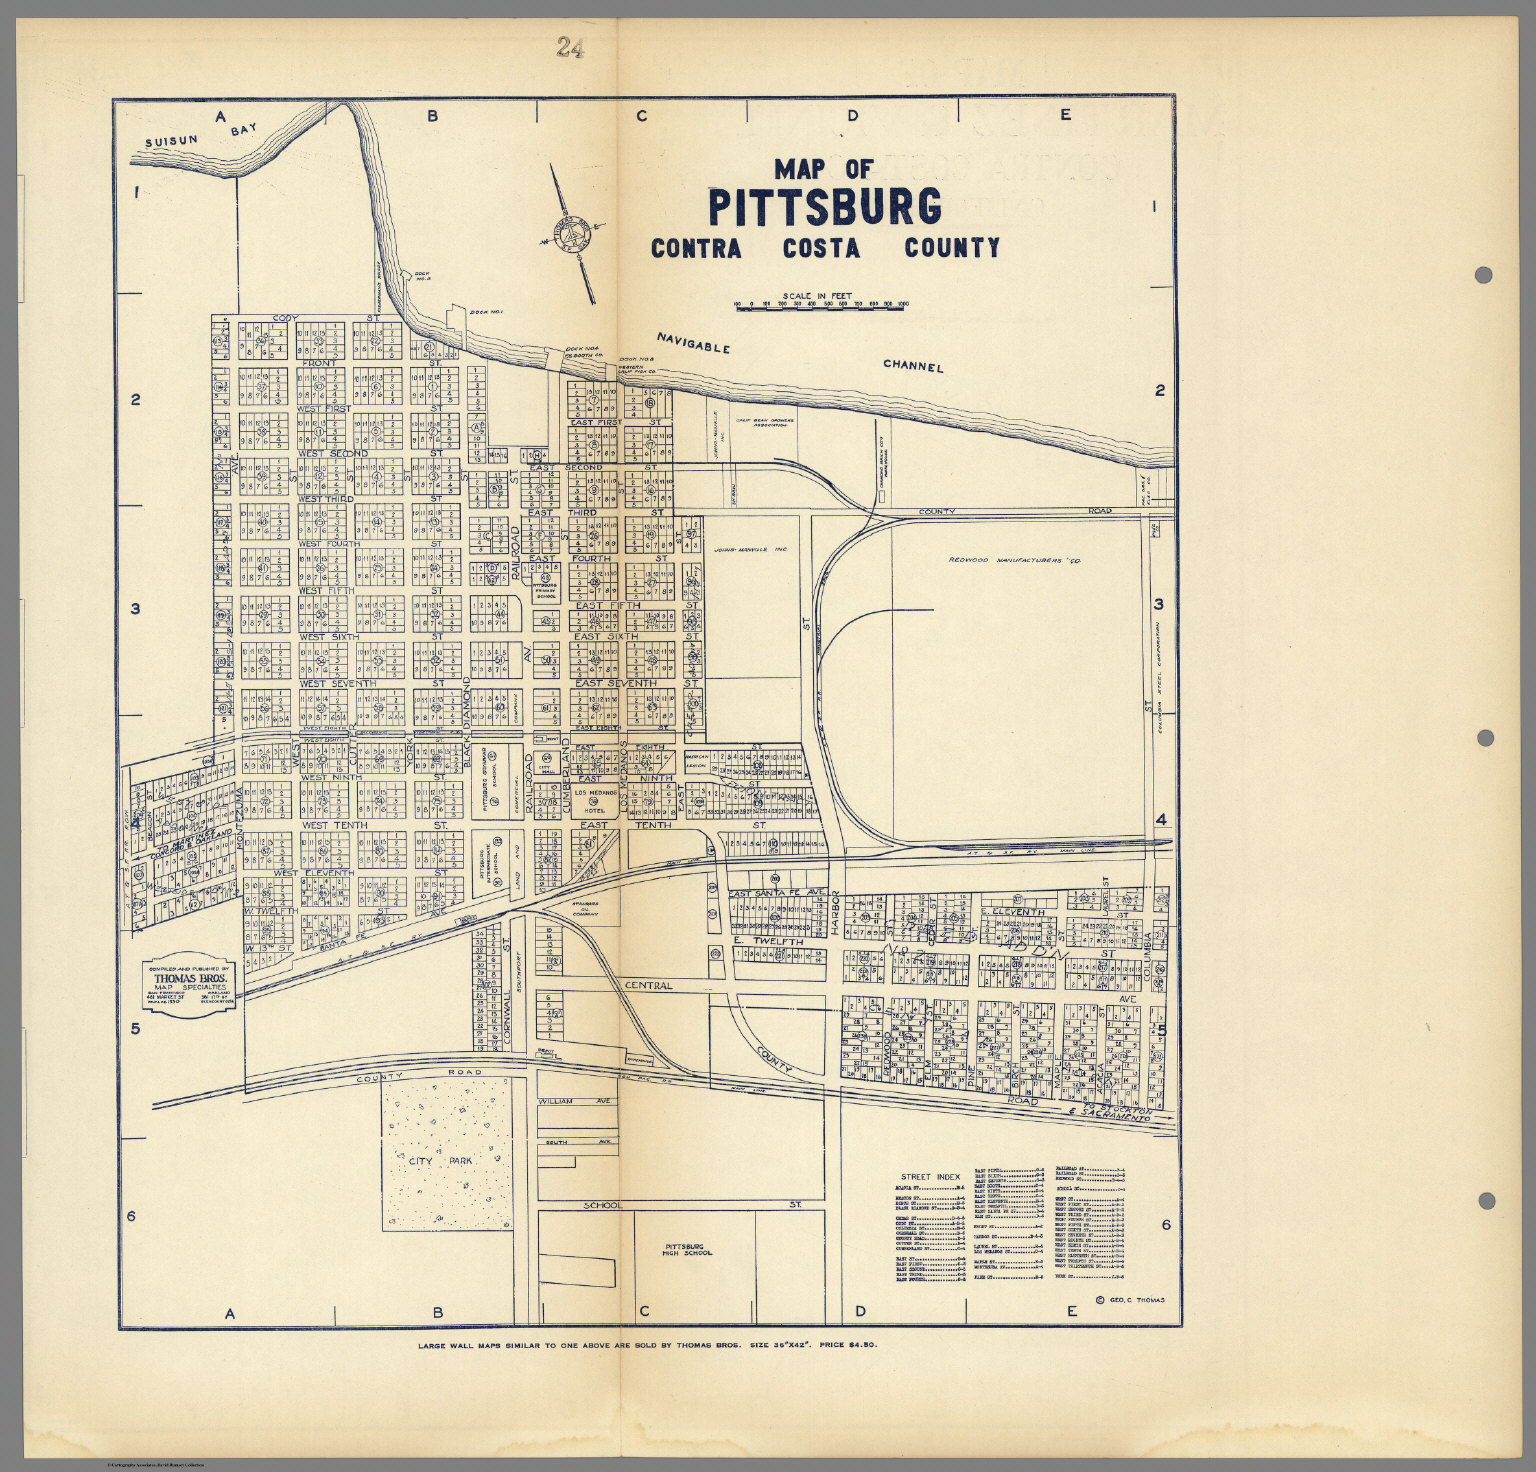 Image of: Map Of Pittsburg Contra Costa County California David Rumsey Historical Map Collection